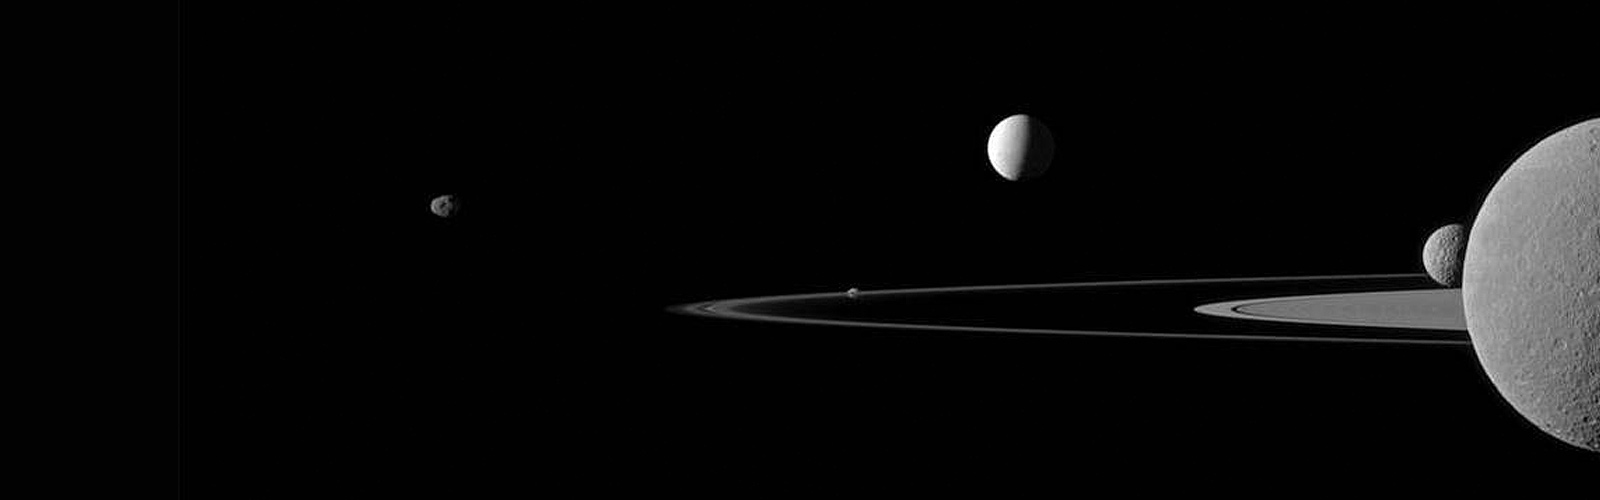 Overview | Saturn Moons – Solar System Exploration: NASA ...